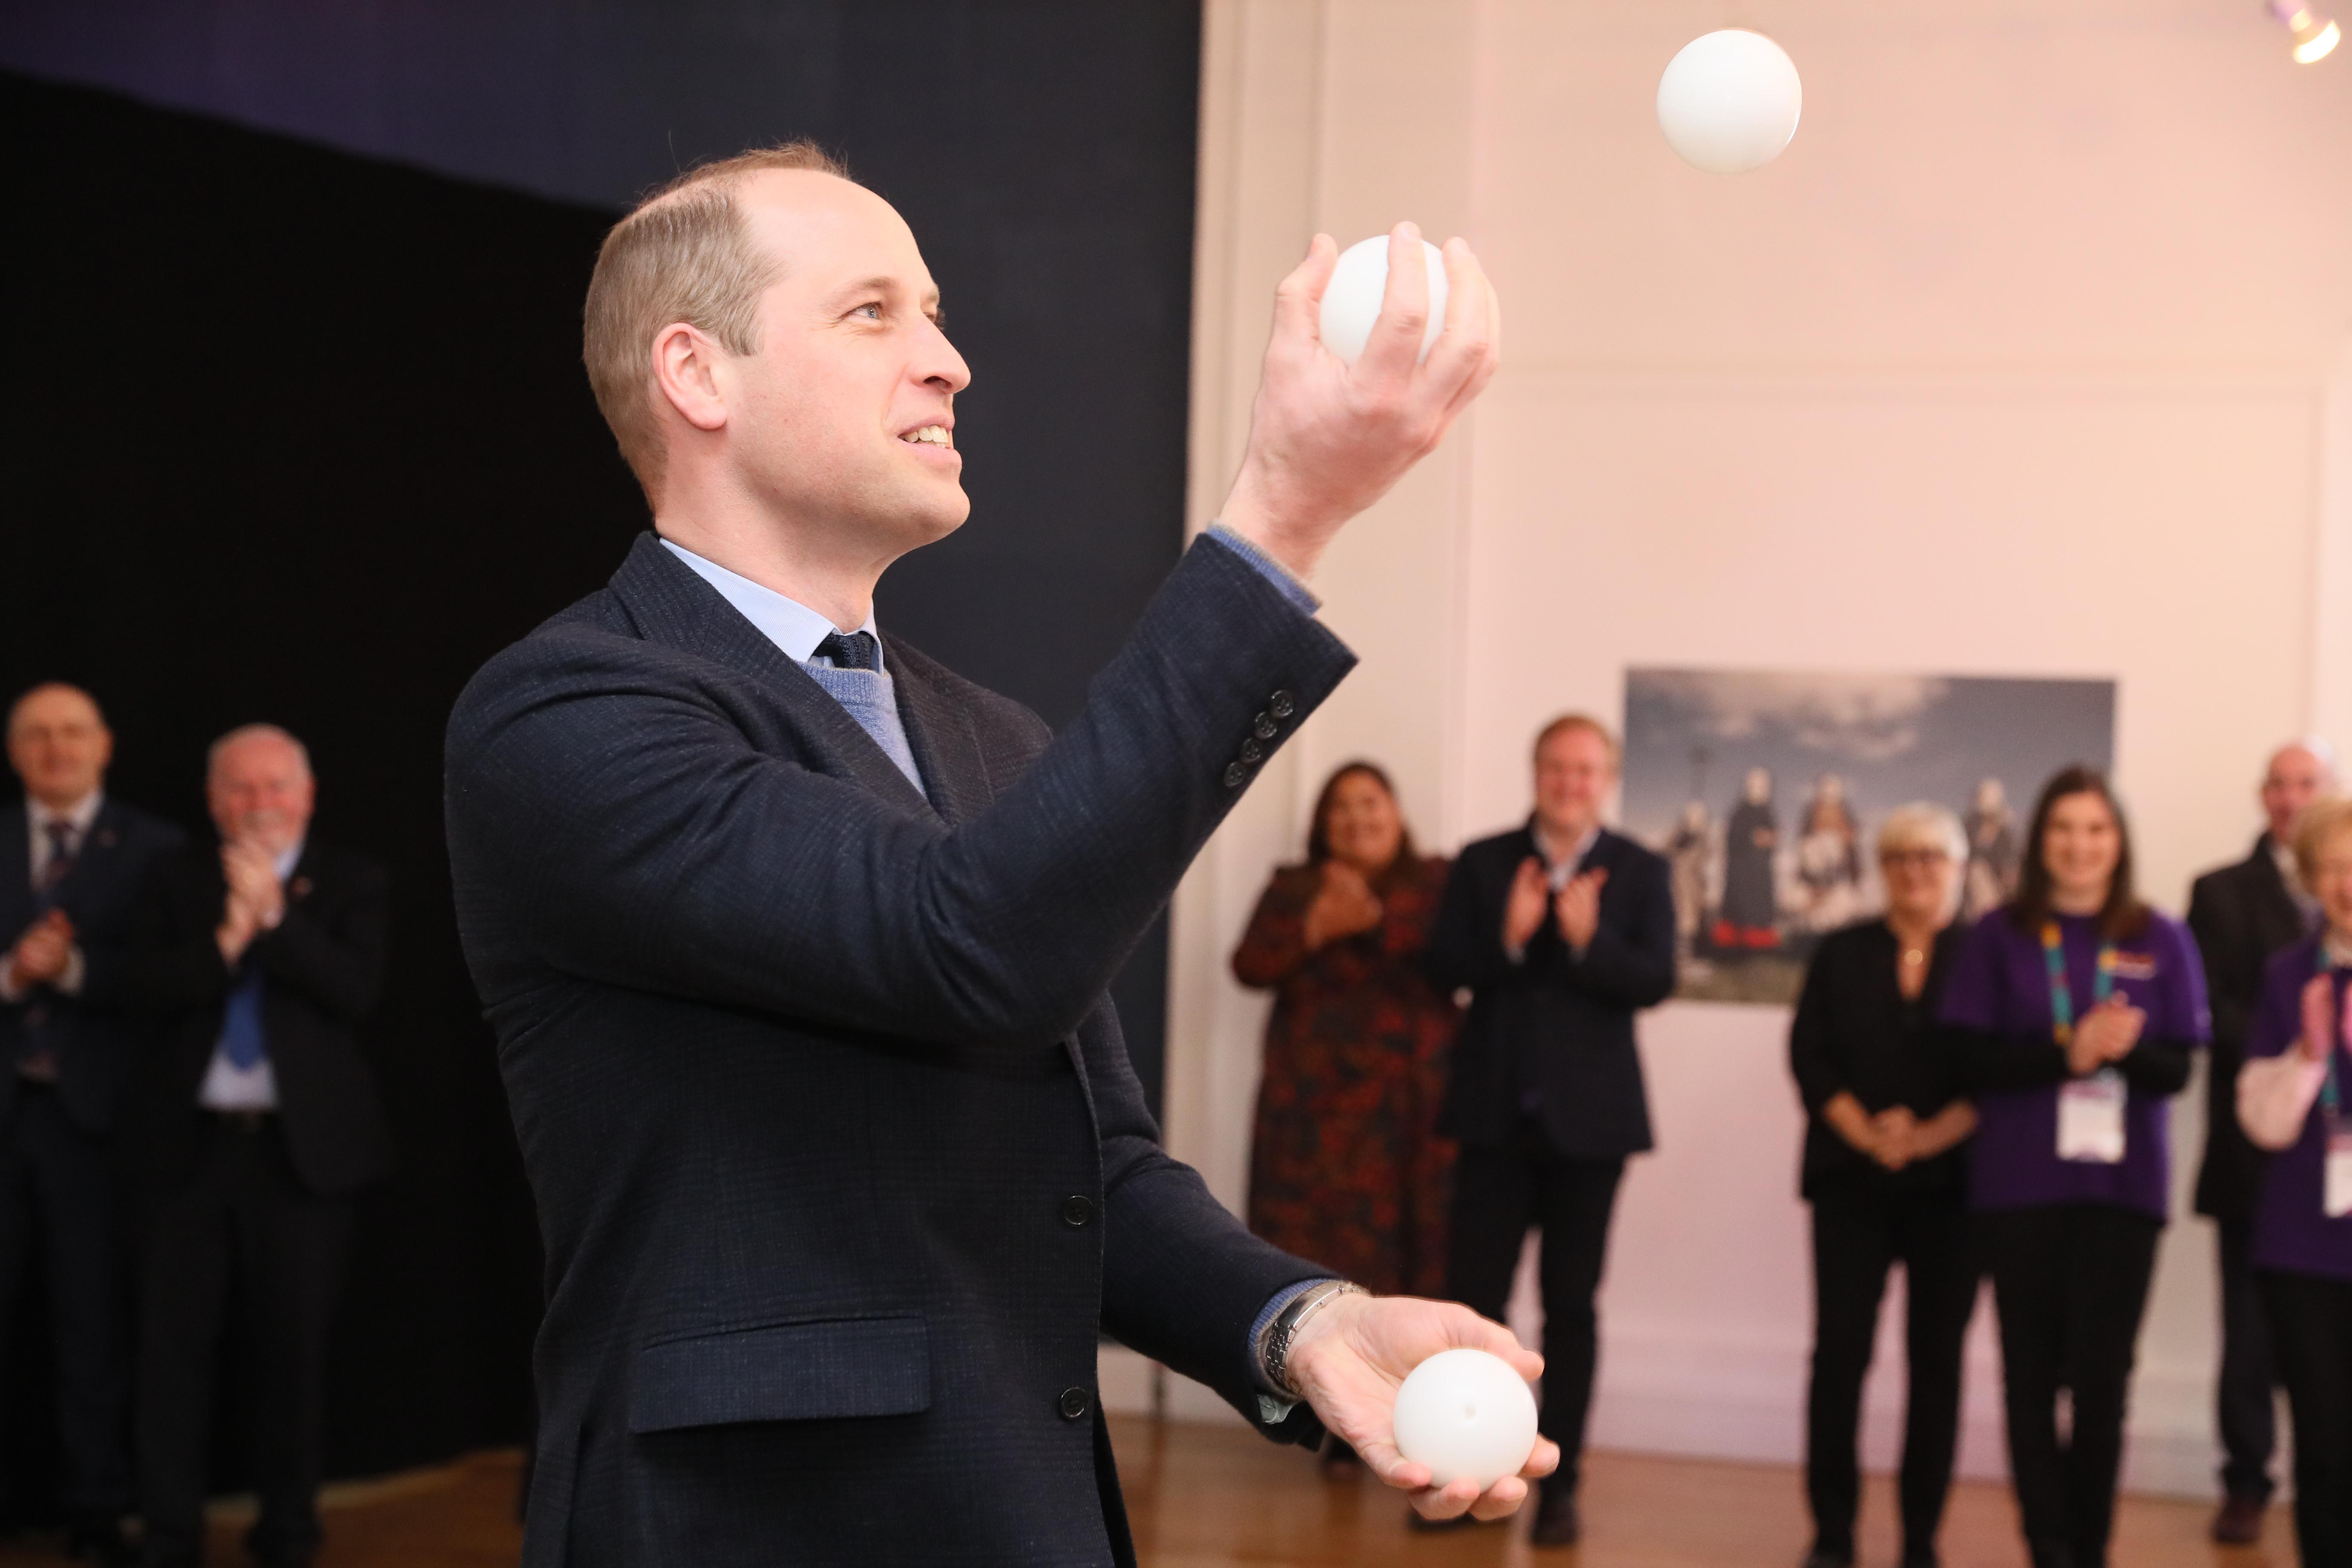 The Duke of Cambridge juggling during a special event at the Tribeton restaurant in Galway to look ahead to the city hosting the European Capital of Culture in 2020.